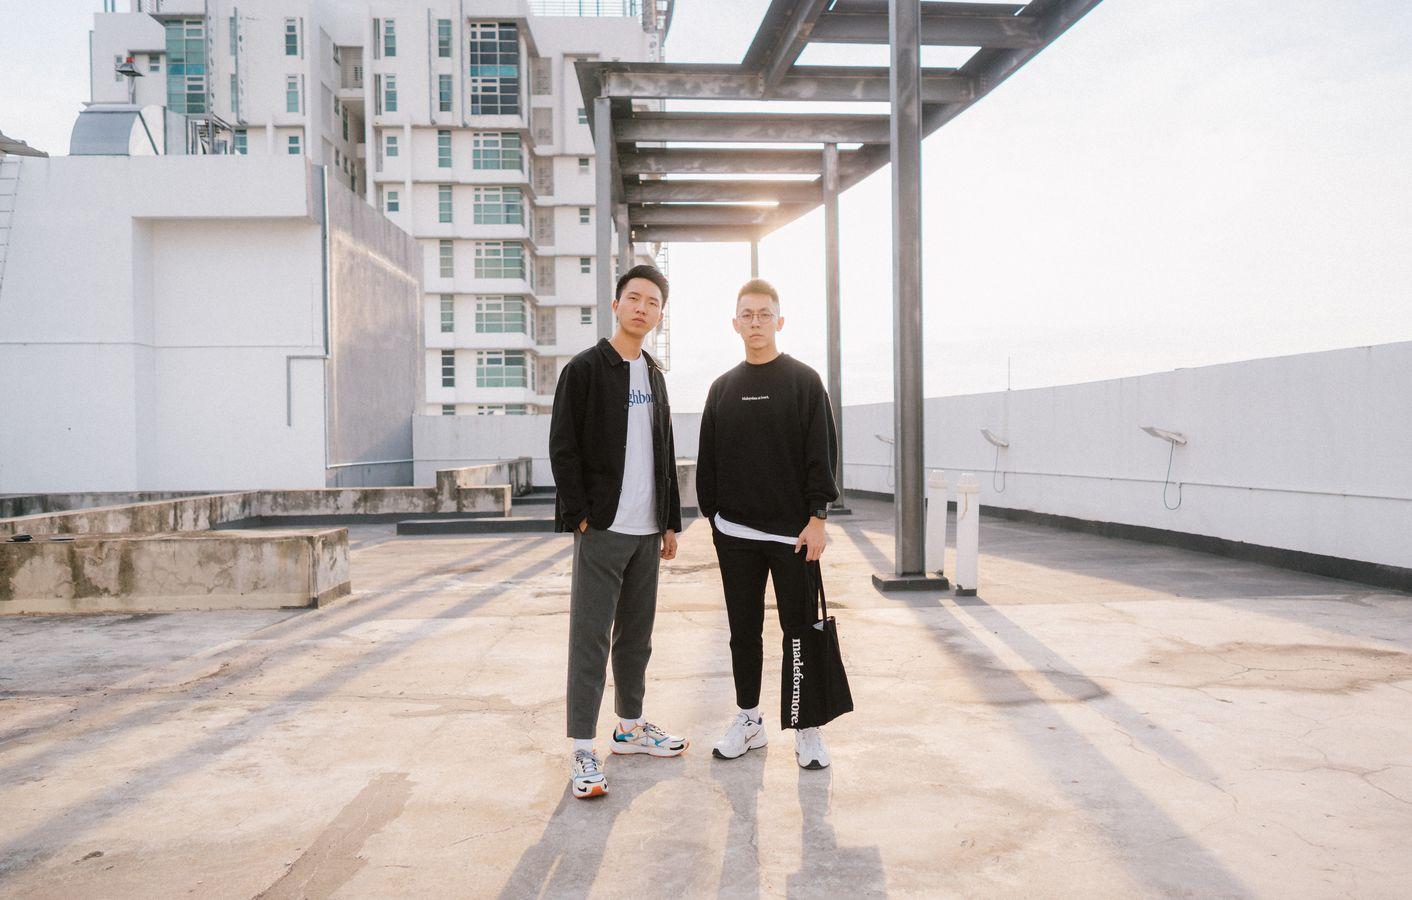 Searching for the meaning of life with Highborn co-founder Chris Yap